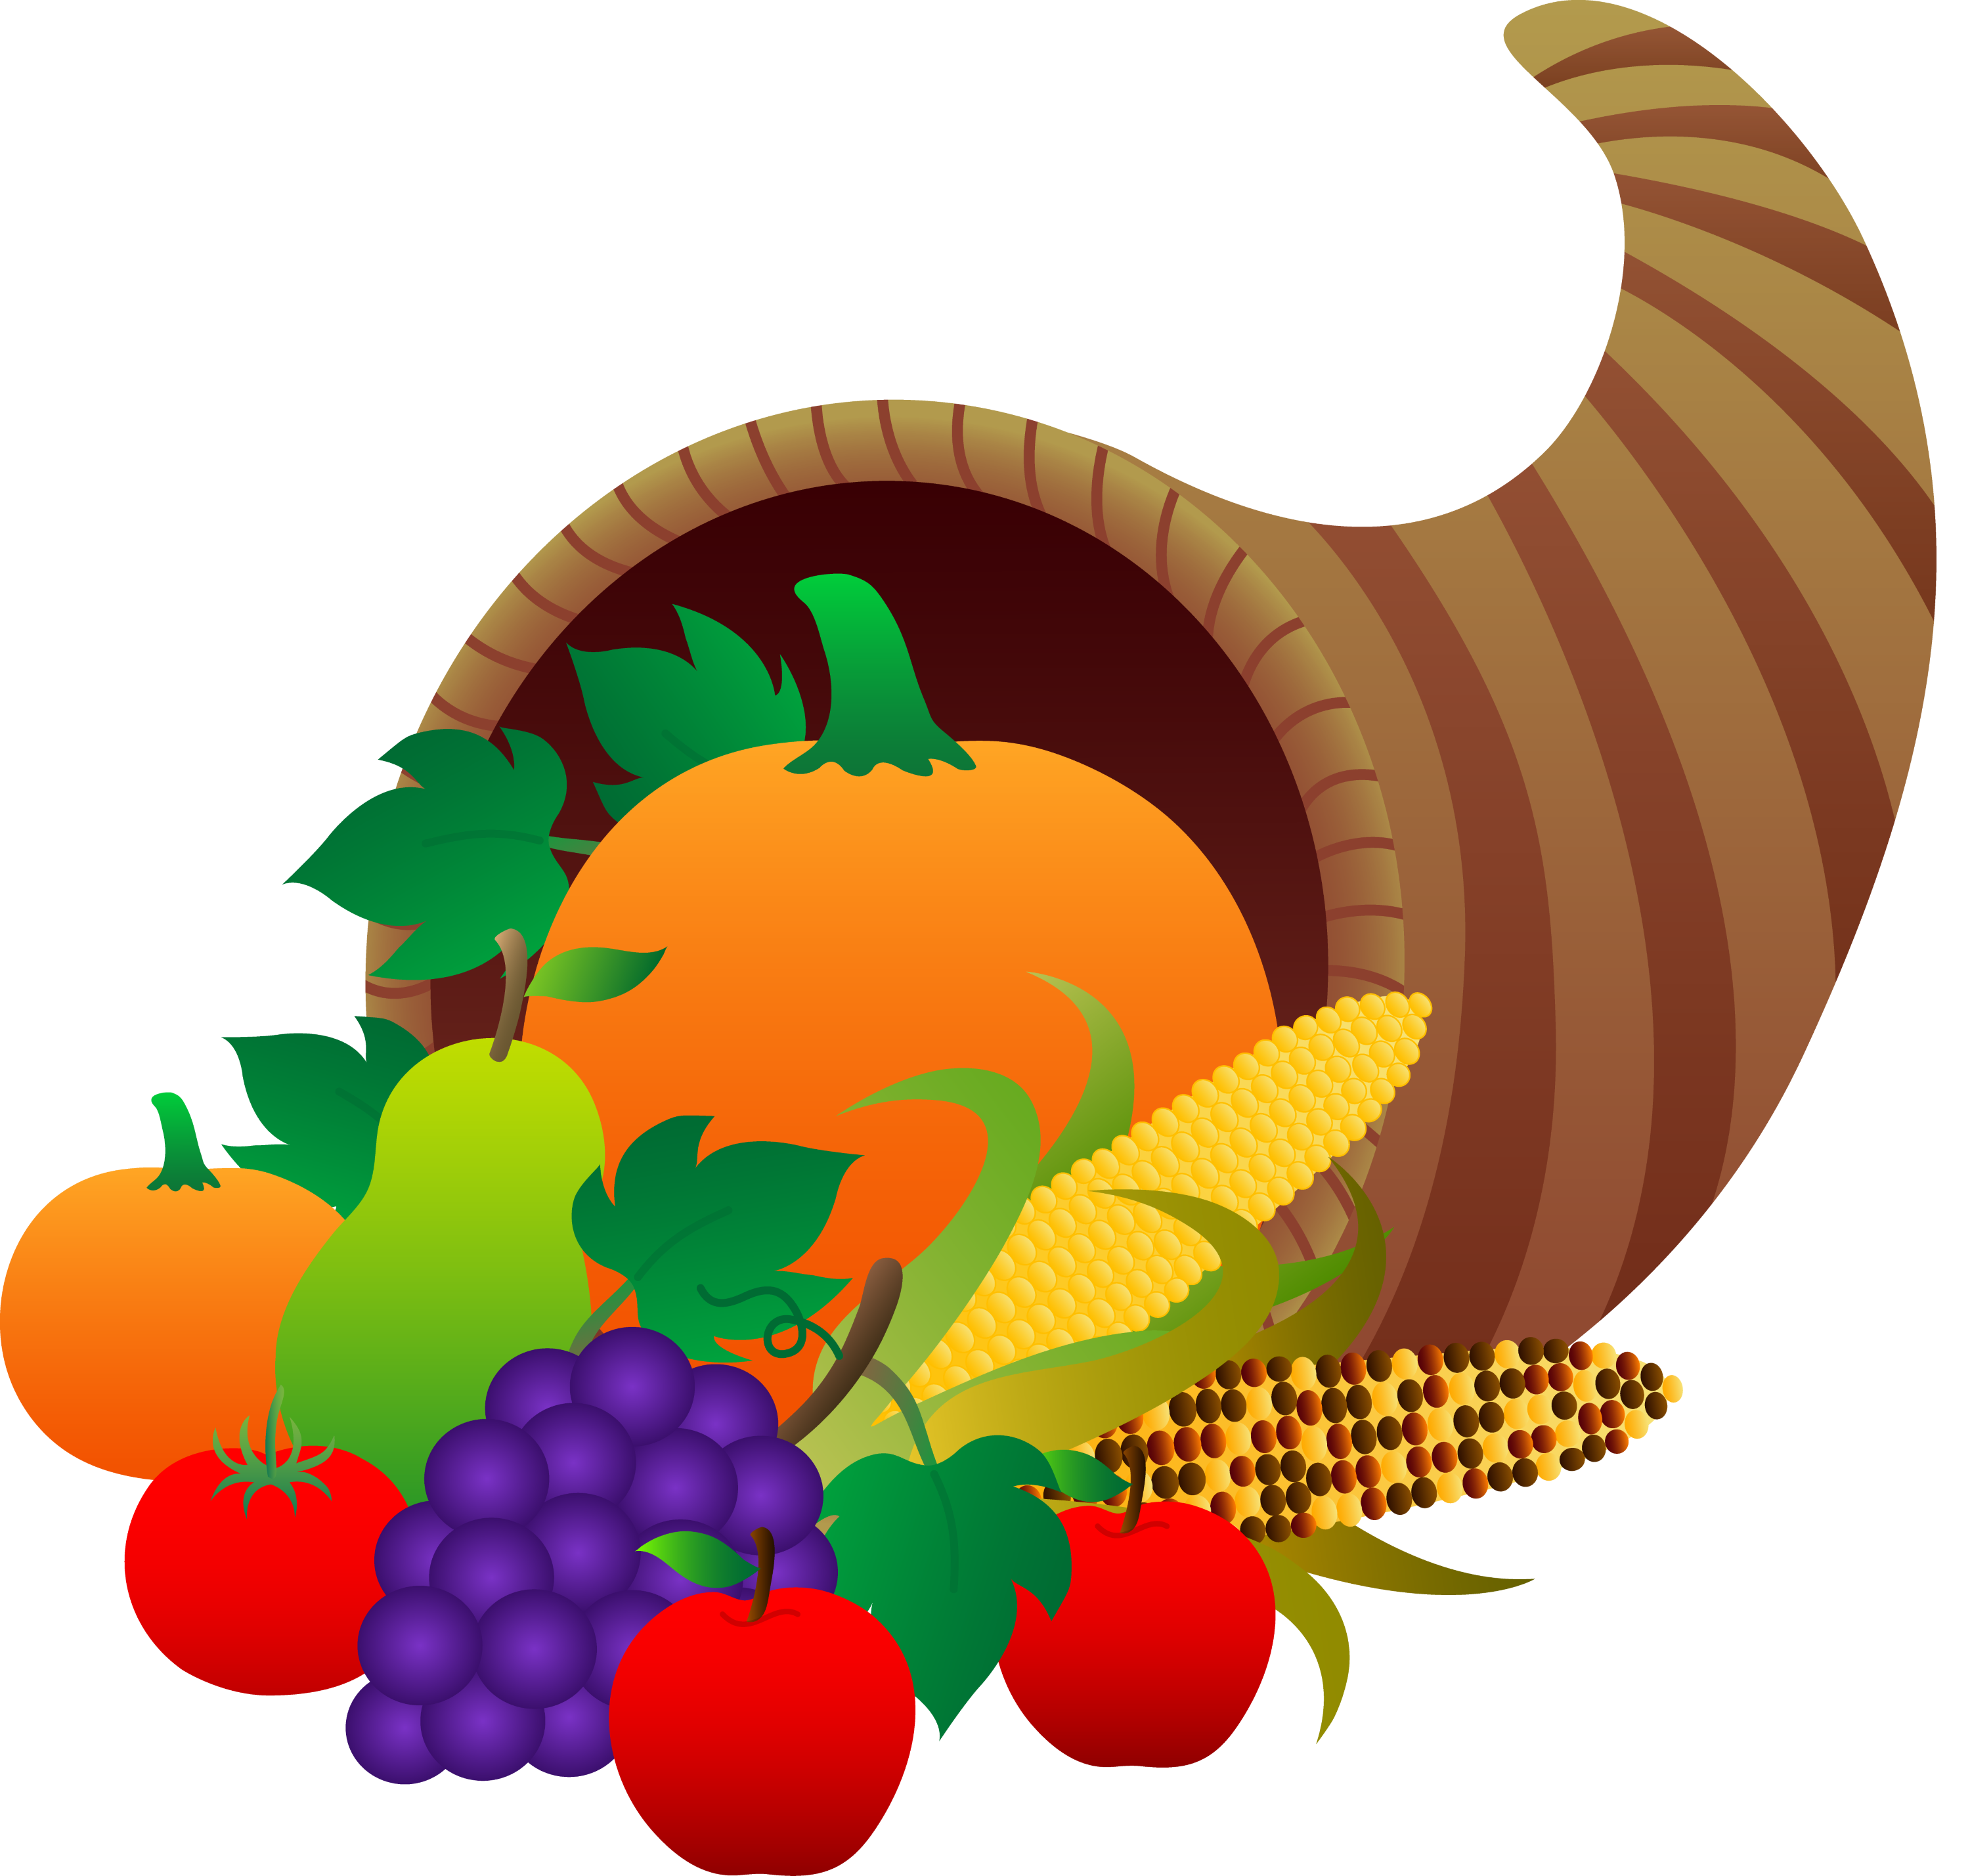 thanksgiving cornucopia free clip art rh sweetclipart com free clip art thanksgiving pictures free clipart thanksgiving turkeys